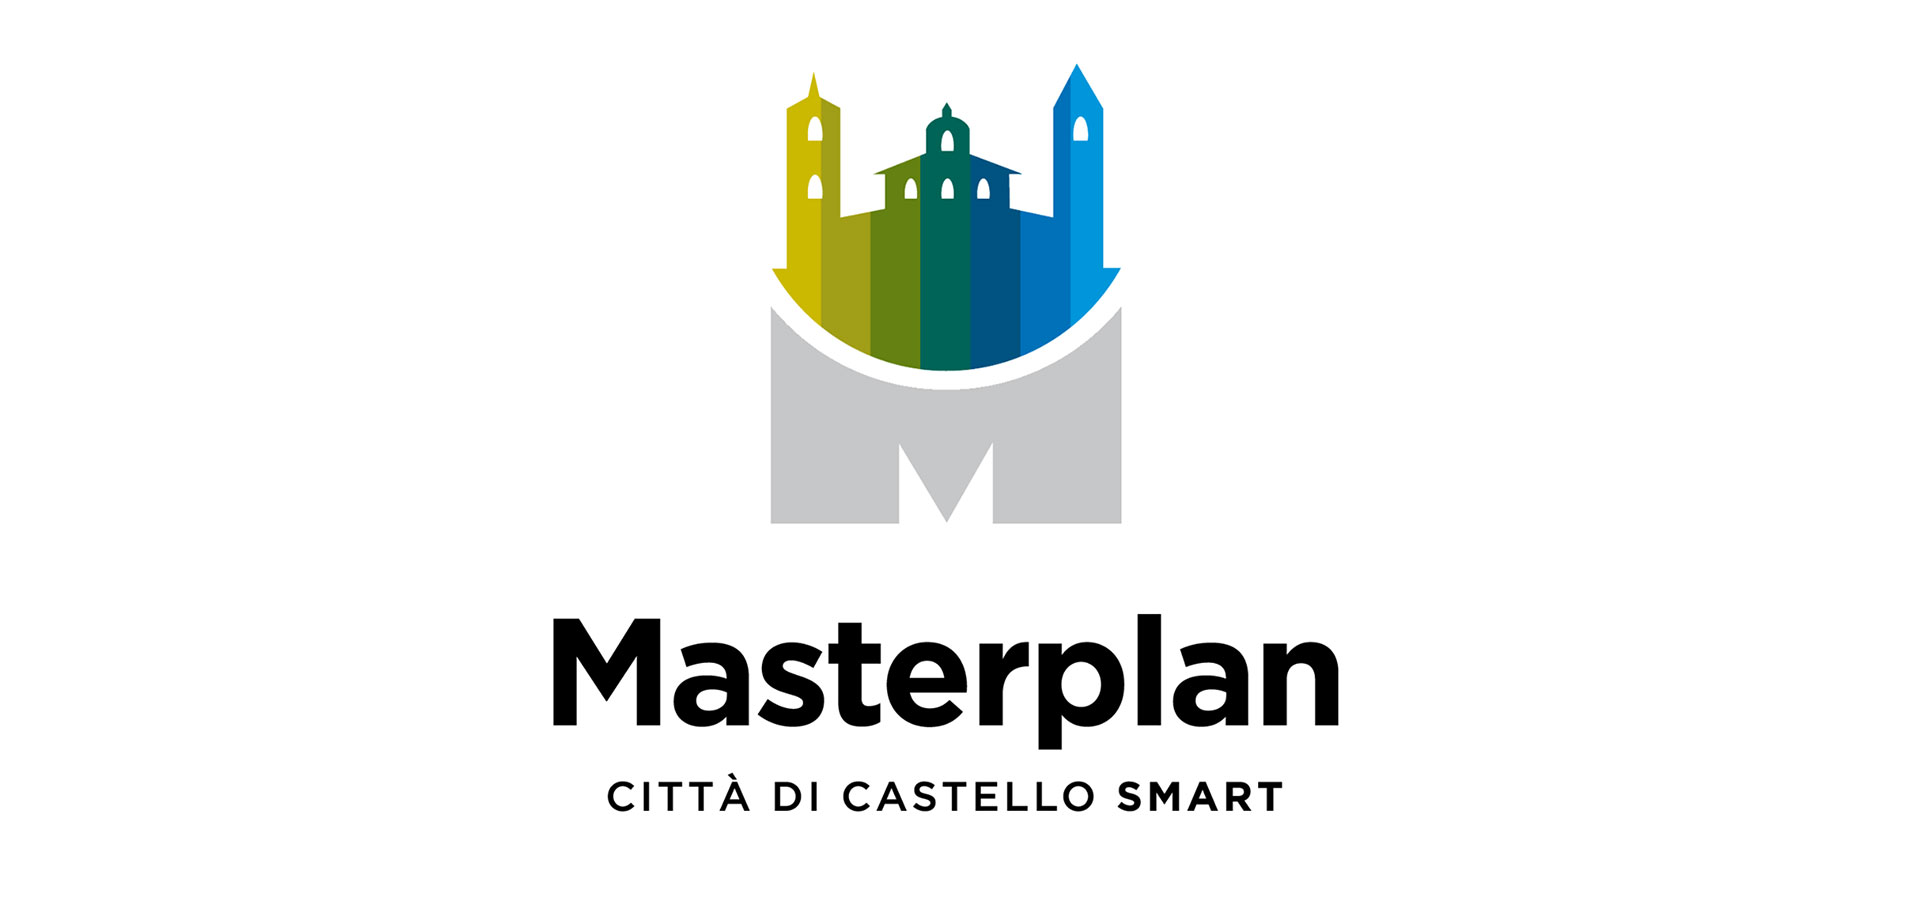 THE MAG - masterplan Città di Castello